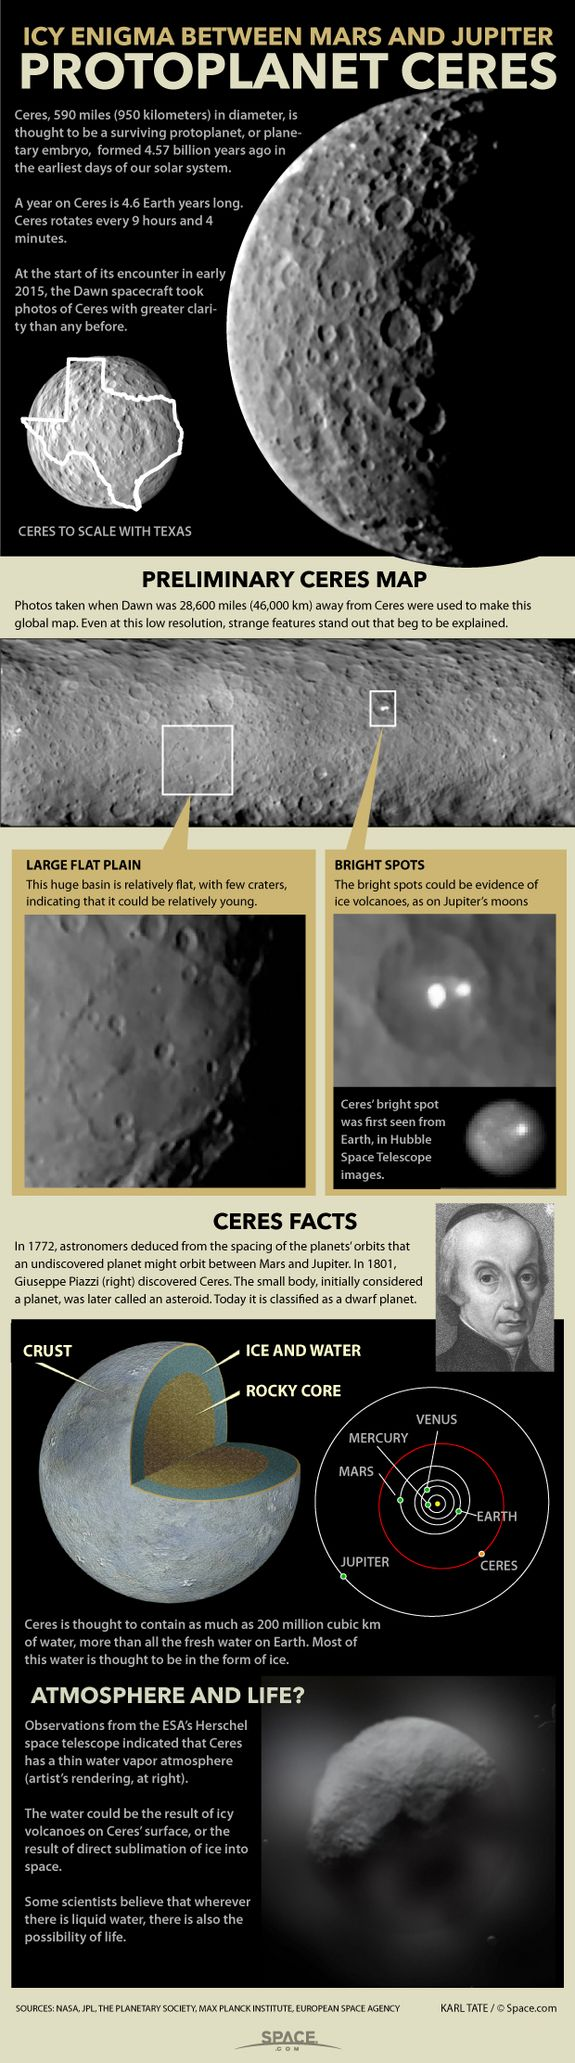 Dwarf Planet Ceres: Biggest in the Asteroid Belt By Karl Tate, Infographics Artist   | 3/5/15 Facts about protoplanet Ceres.